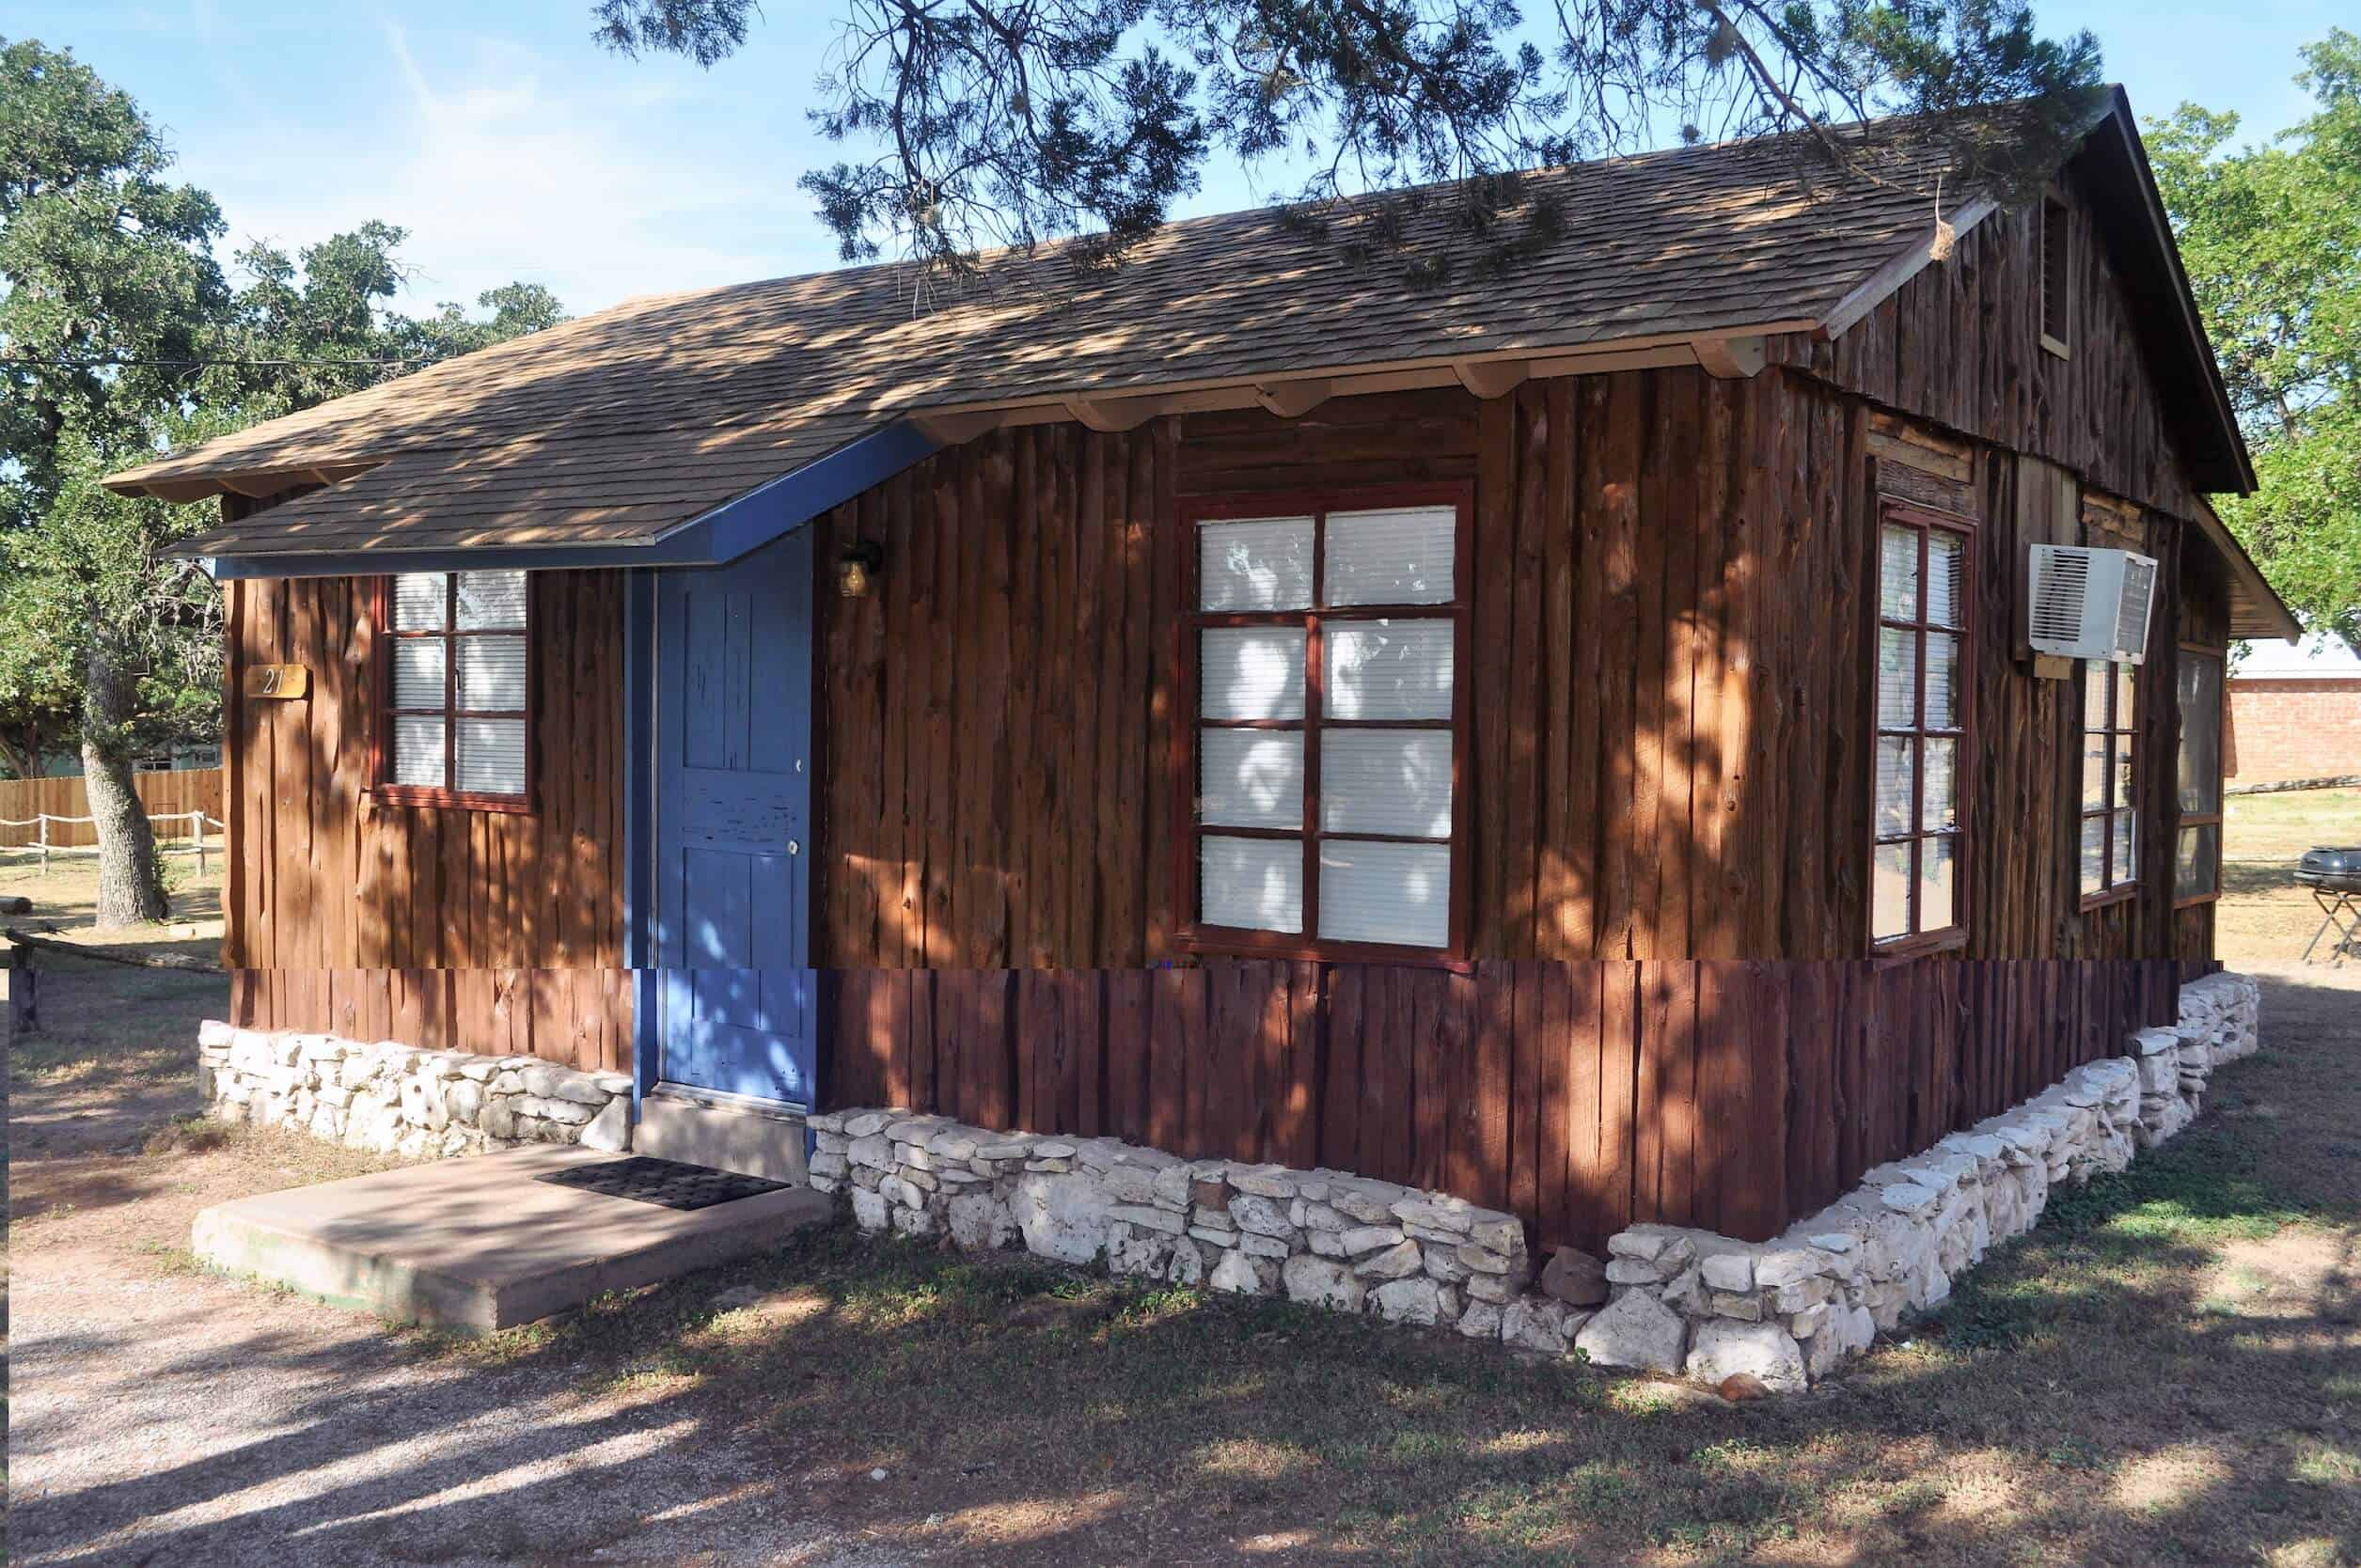 4 PERSON CABINS for rentLake BuchananHill CountryCedar